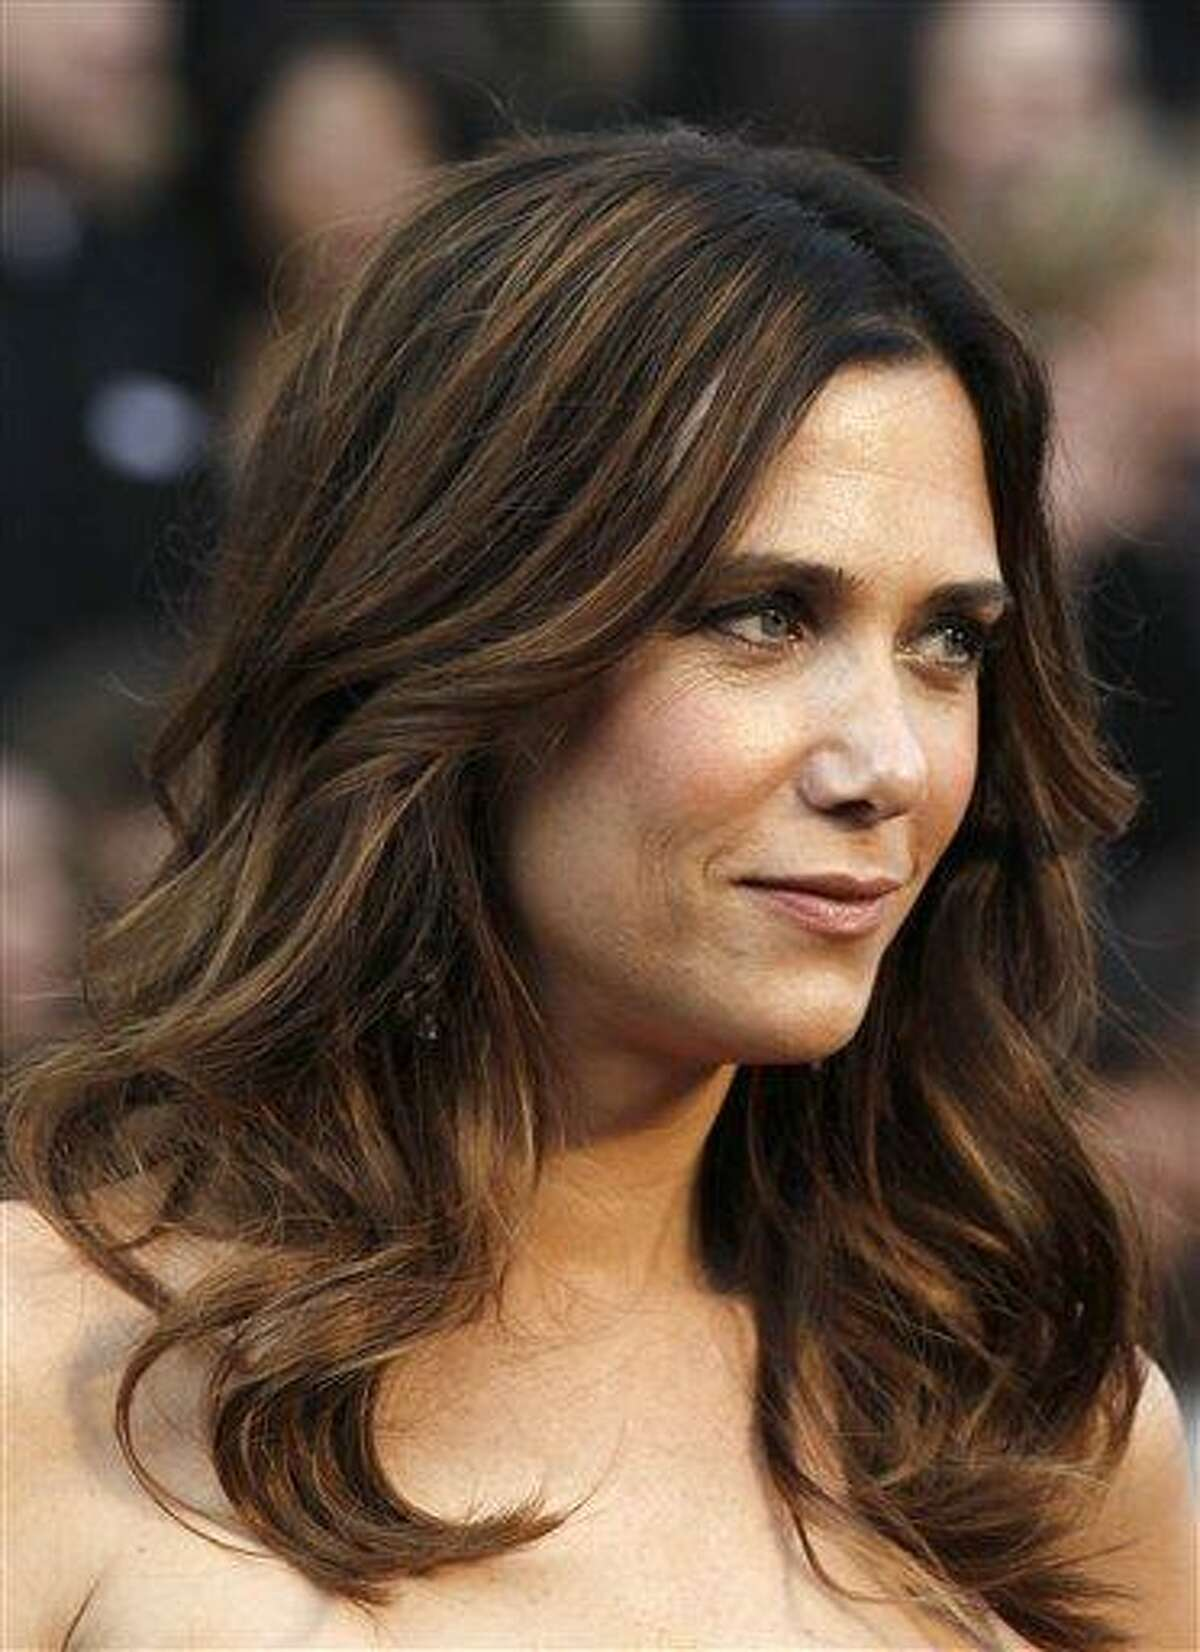 Kristen Wiig arrives before the 84th Academy Awards on in this February 2012 file photo taken in the Hollywood section of Los Angeles. Wiig got a musical sendoff on the season finale of